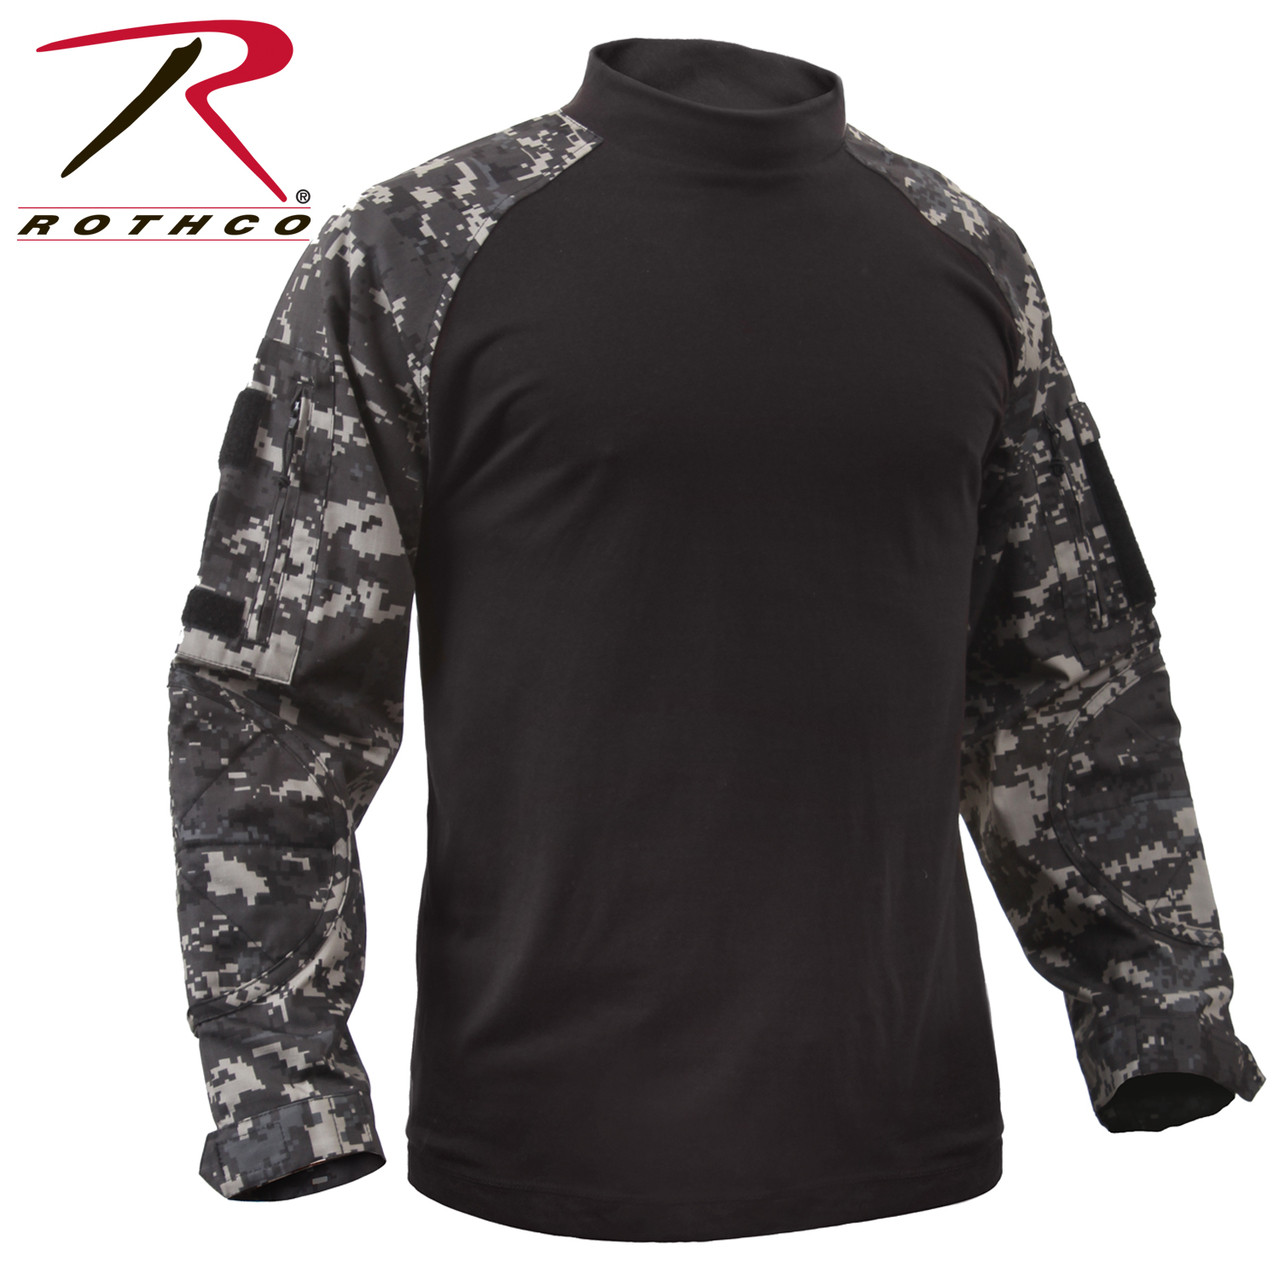 942f0c5c Rothco Tactical Airsoft Combat Shirt - Subdued Urban Digital Camo - Hero  Outdoors